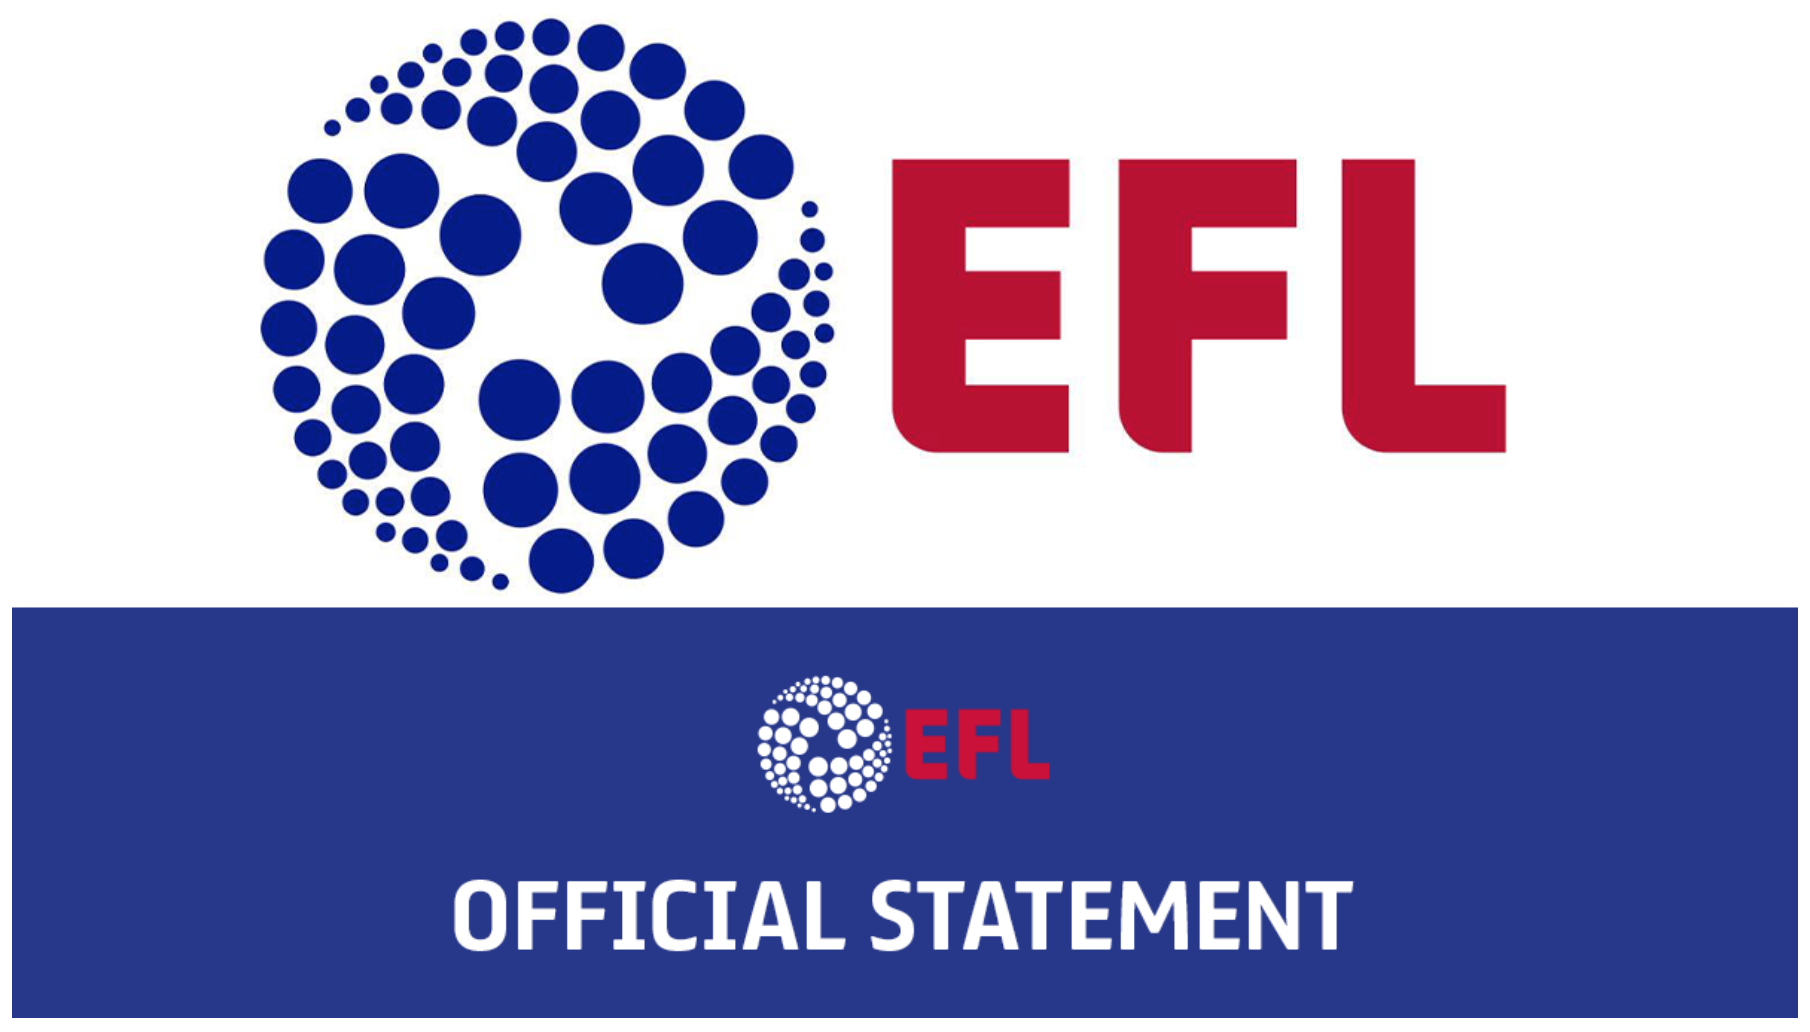 Response to EFL Statement